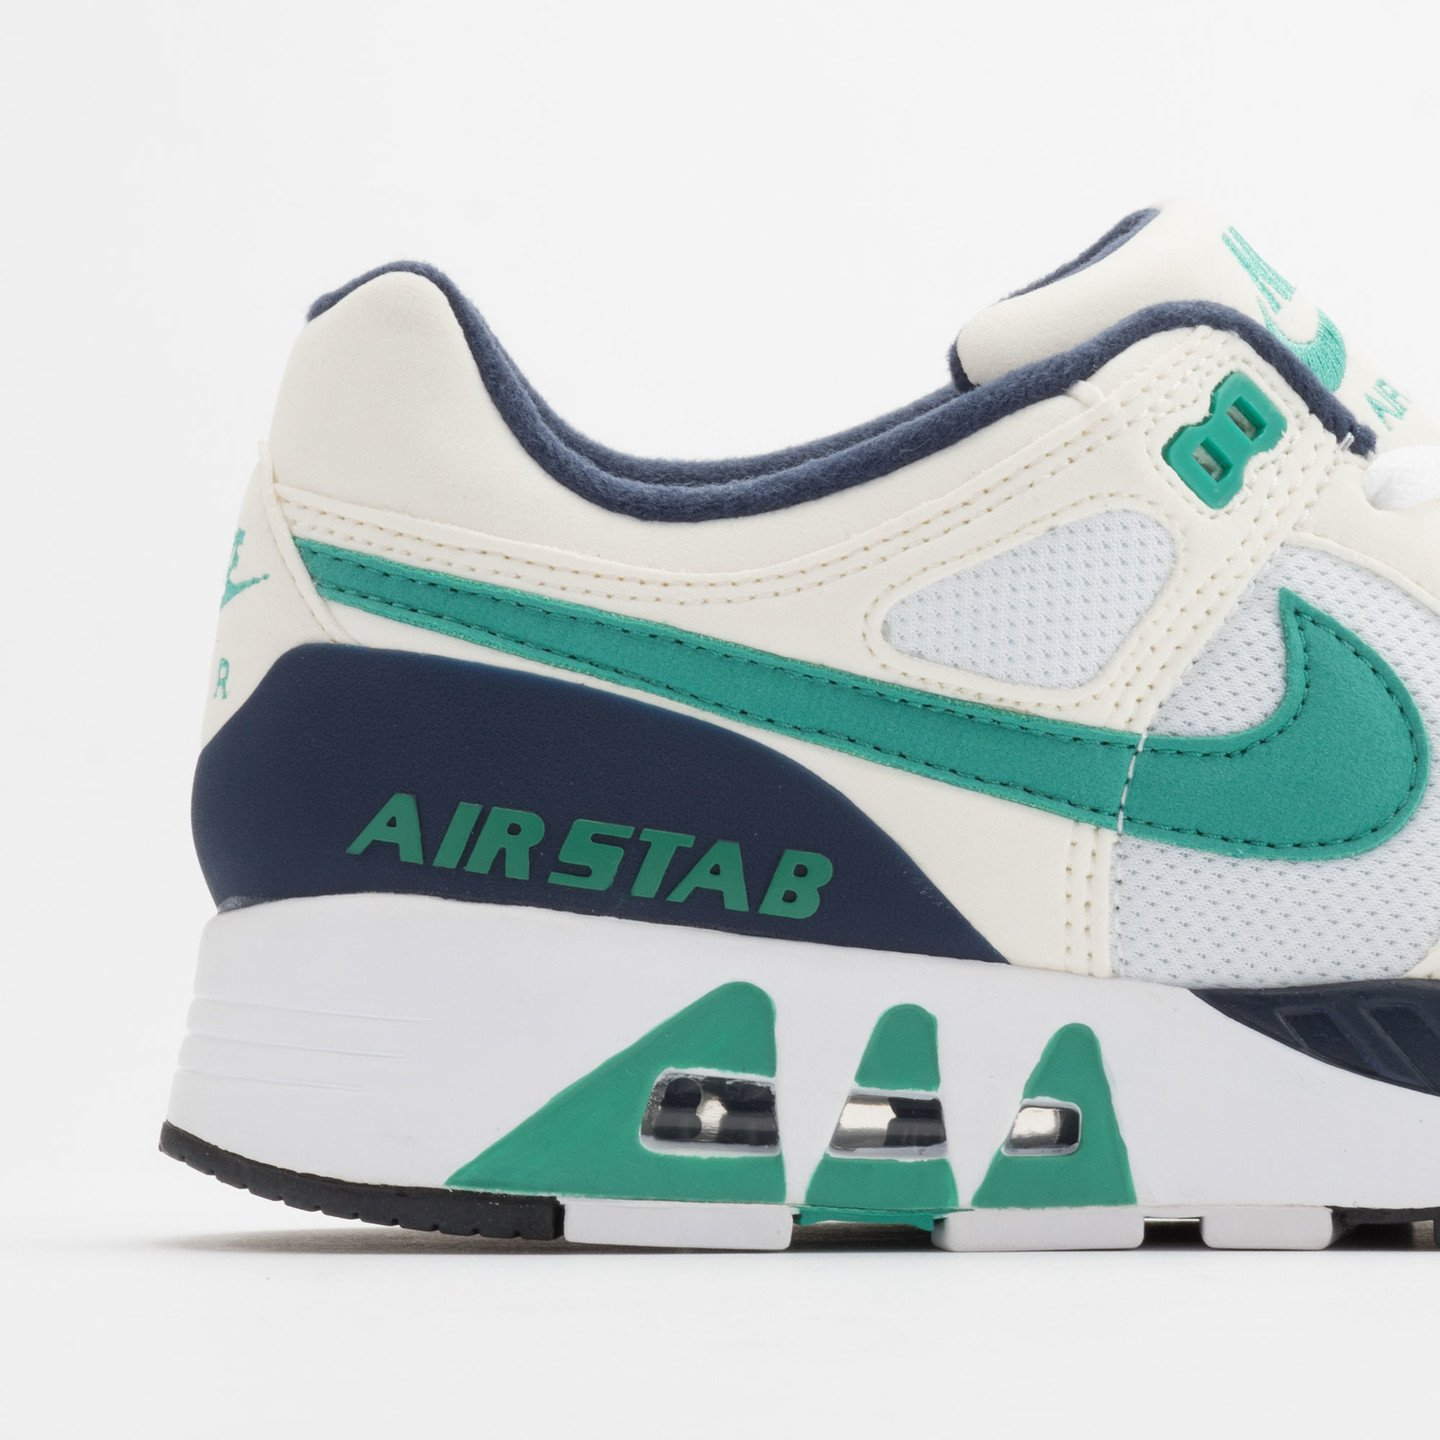 Nike Air Stab White/Emerald Green-Sl-Mid Nvy 312451-100-46